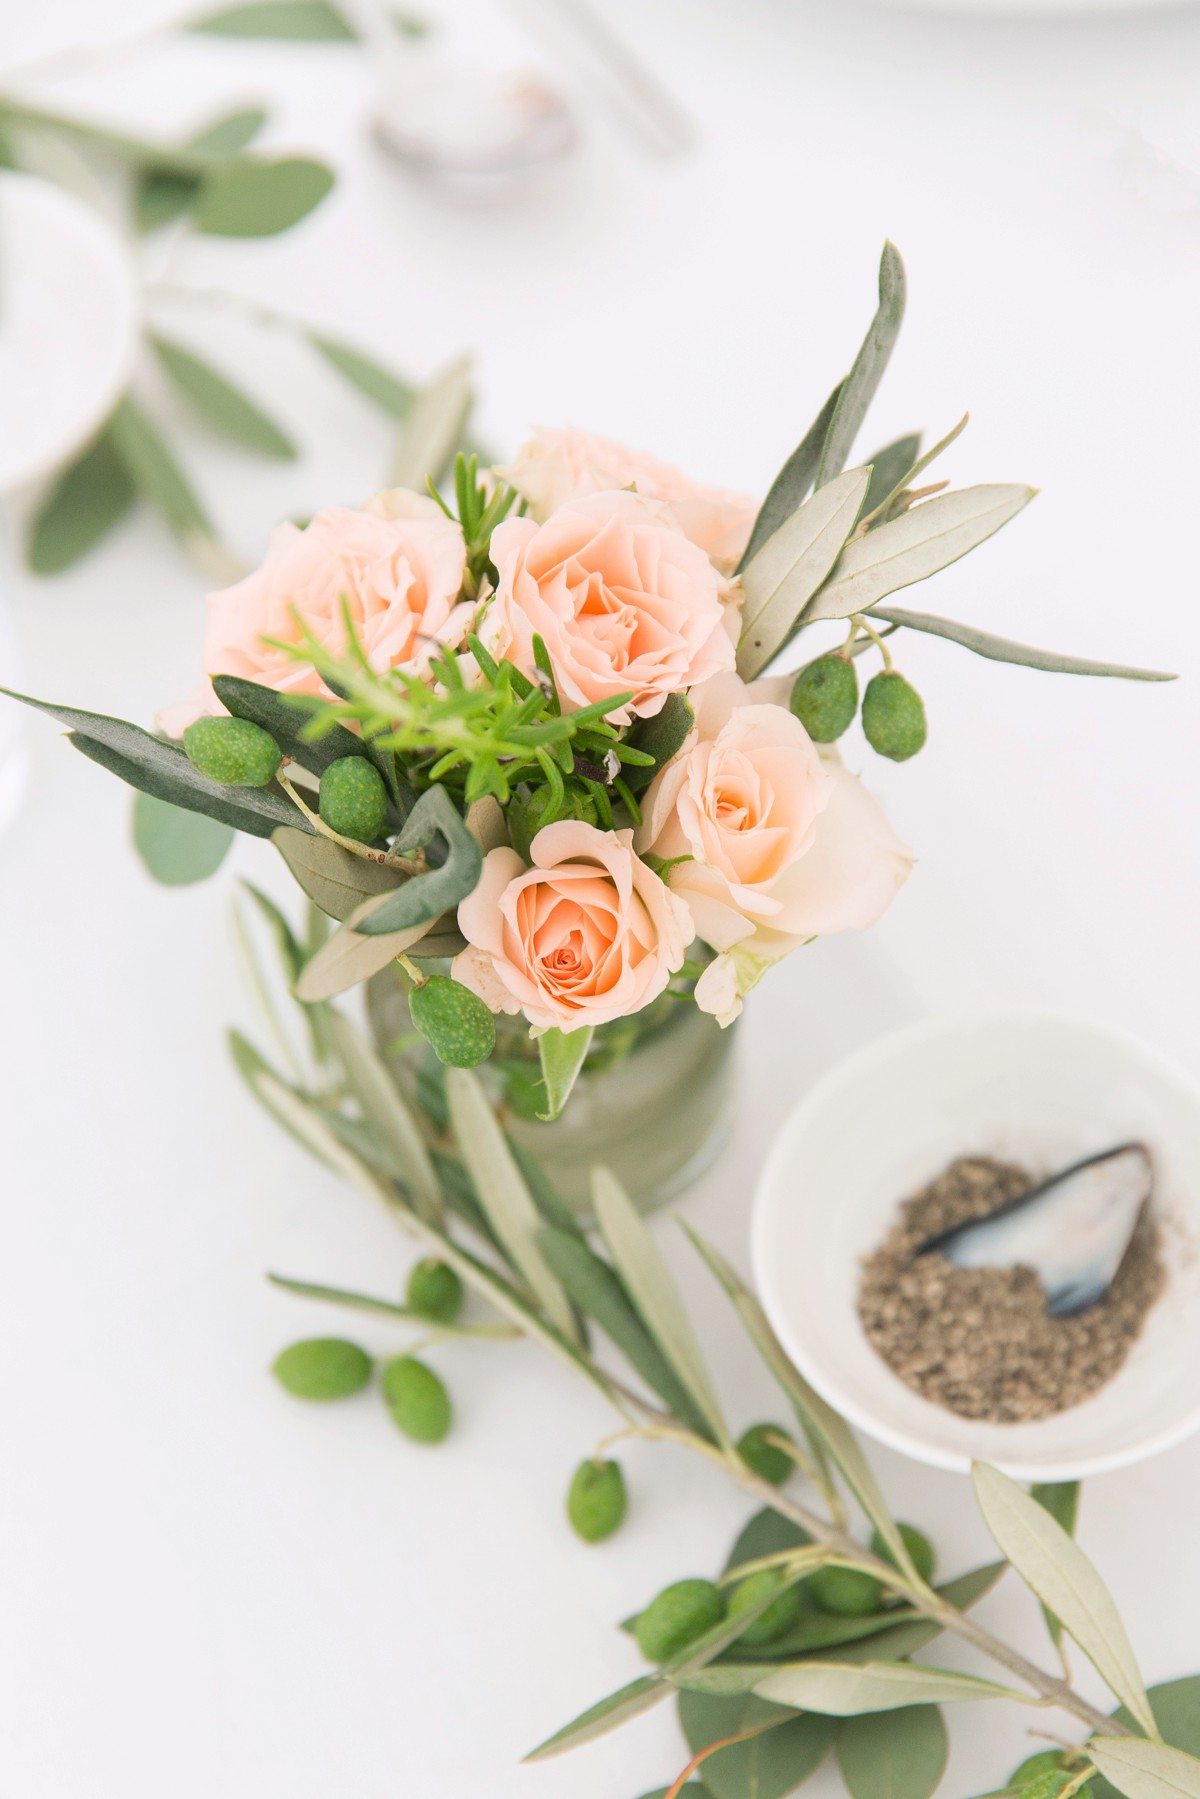 floral display on wedding table